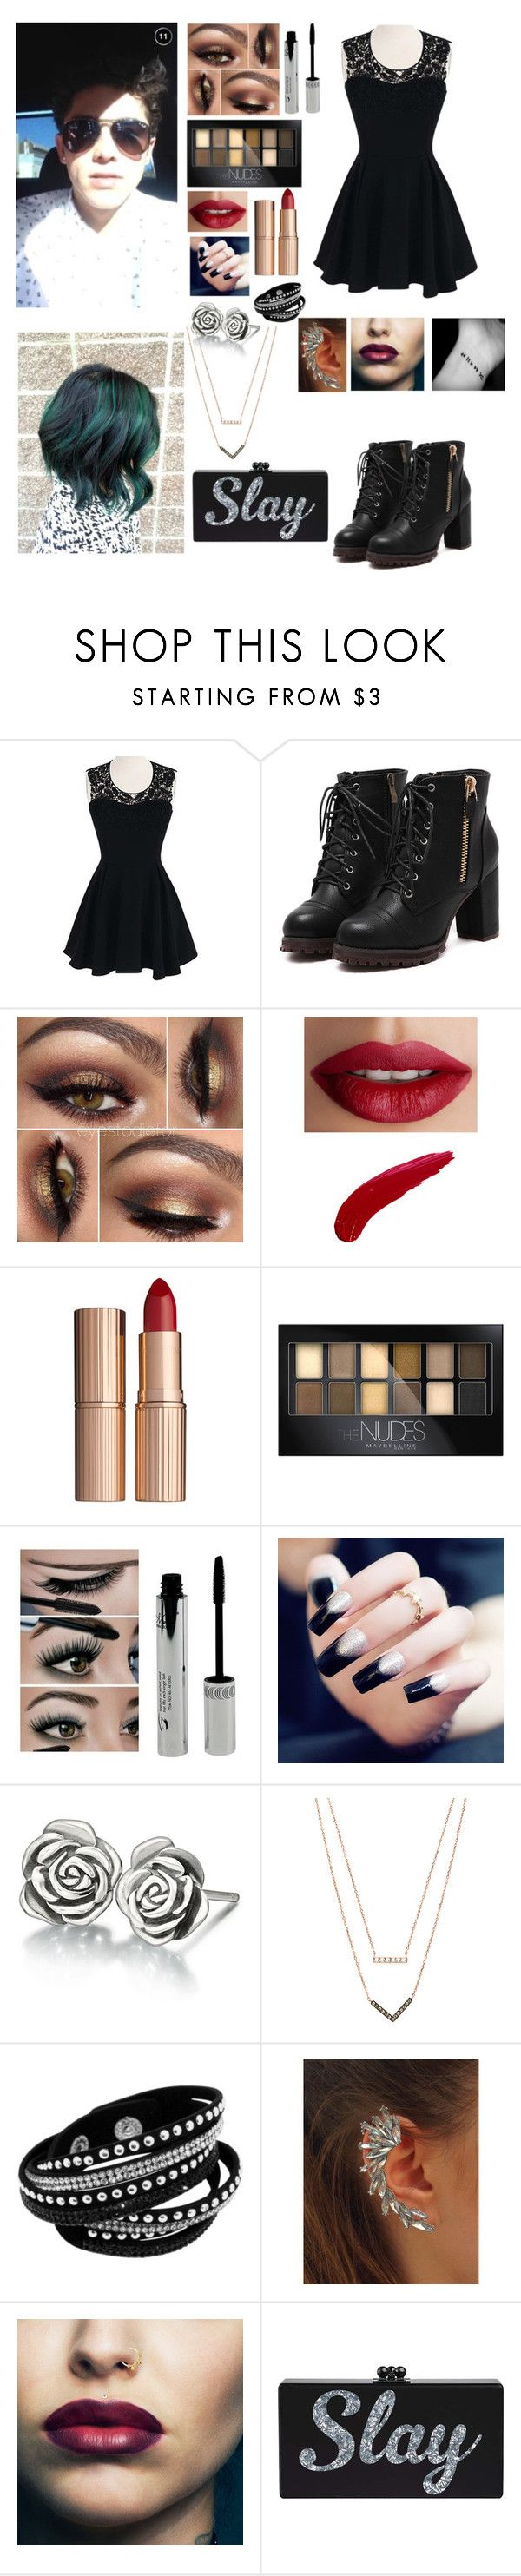 """""""MTV Music Awards w/ Skate Maloley"""" by bean-28 ❤ liked on Polyvore featuring TheBalm, Charlotte Tilbury, Maybelline, Chamilia, Michael Kors, women's clothing, women's fashion, women, female and woman"""